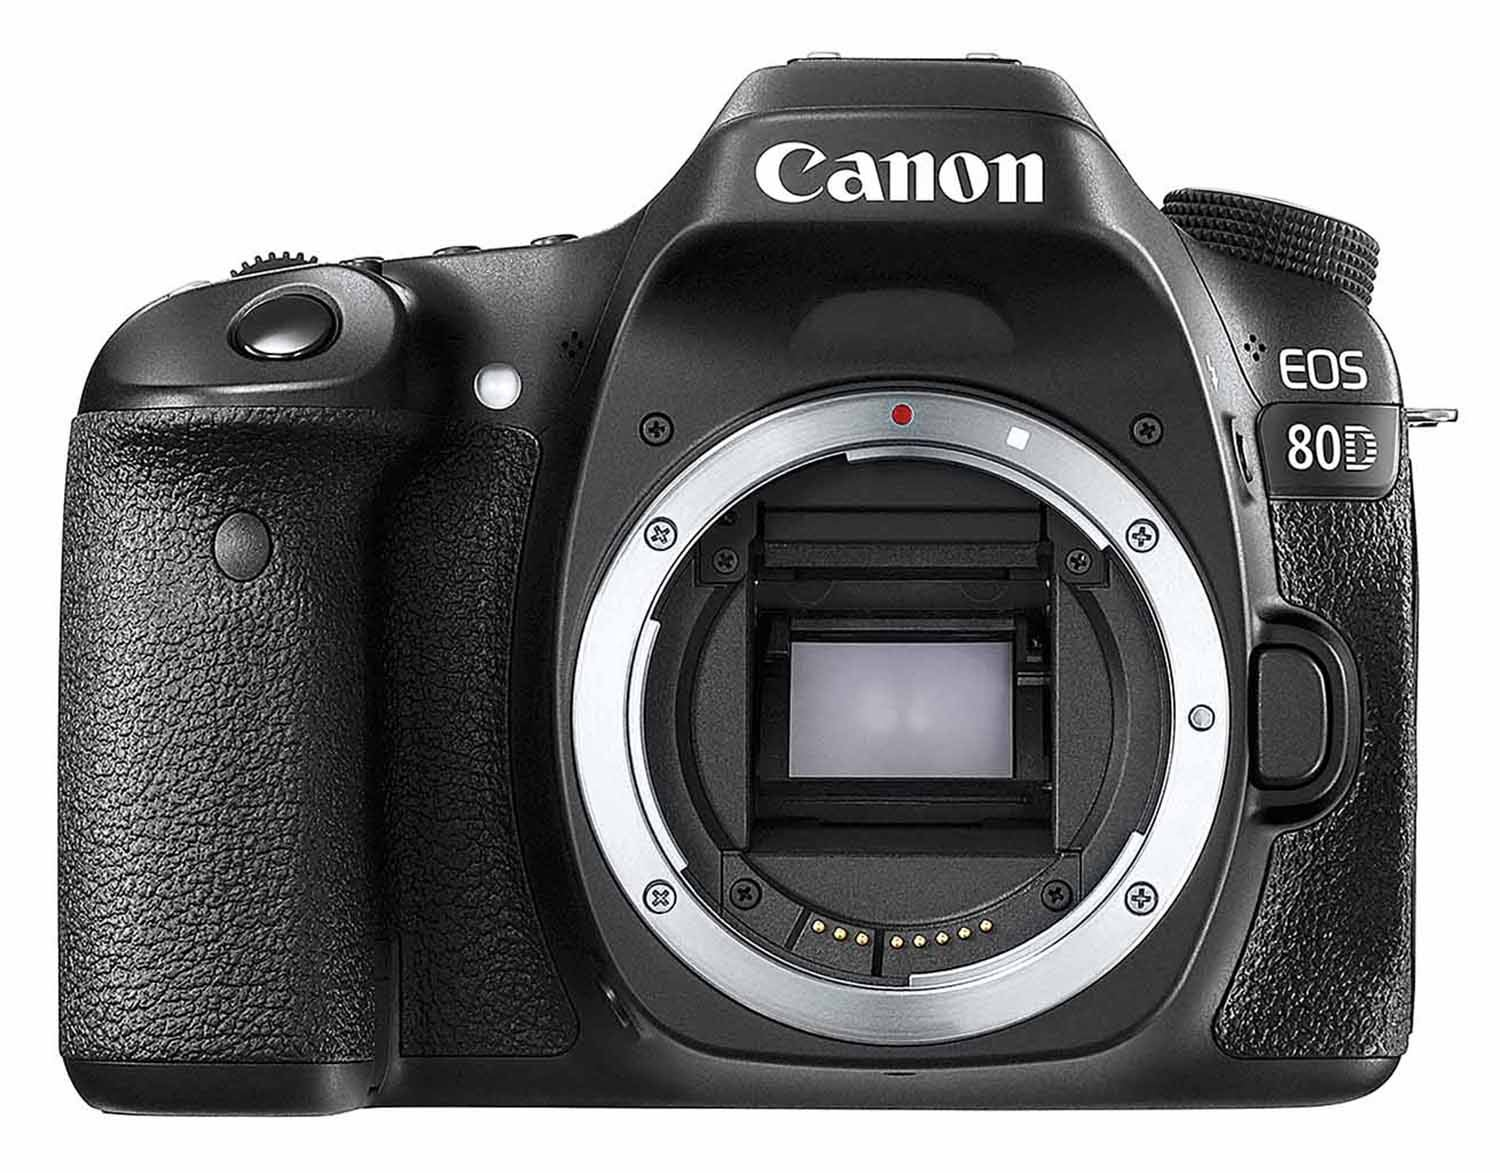 Canon 80D Camera Review